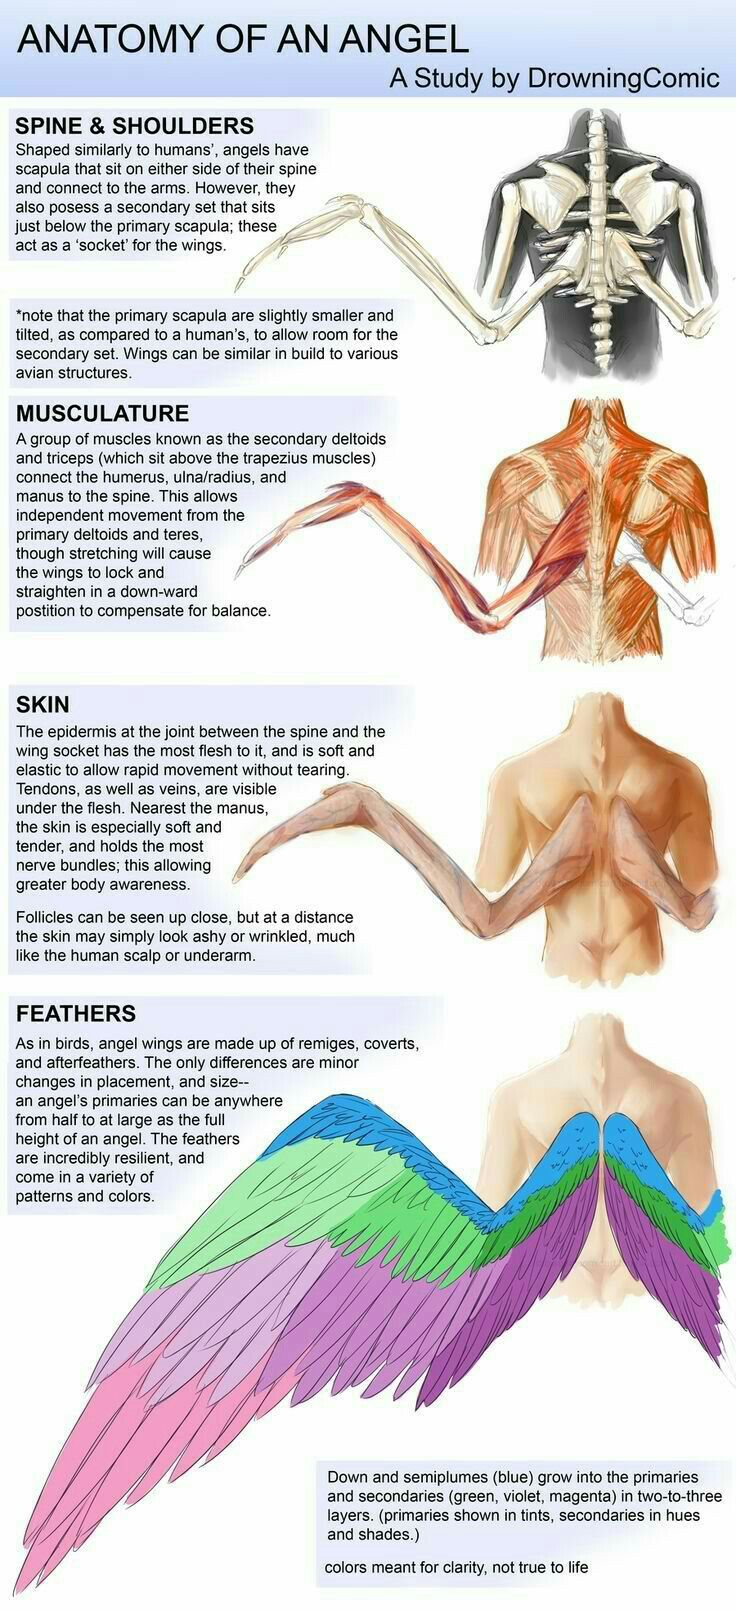 Feathers | Feathers | Pinterest | Feathers, Drawings and Anatomy